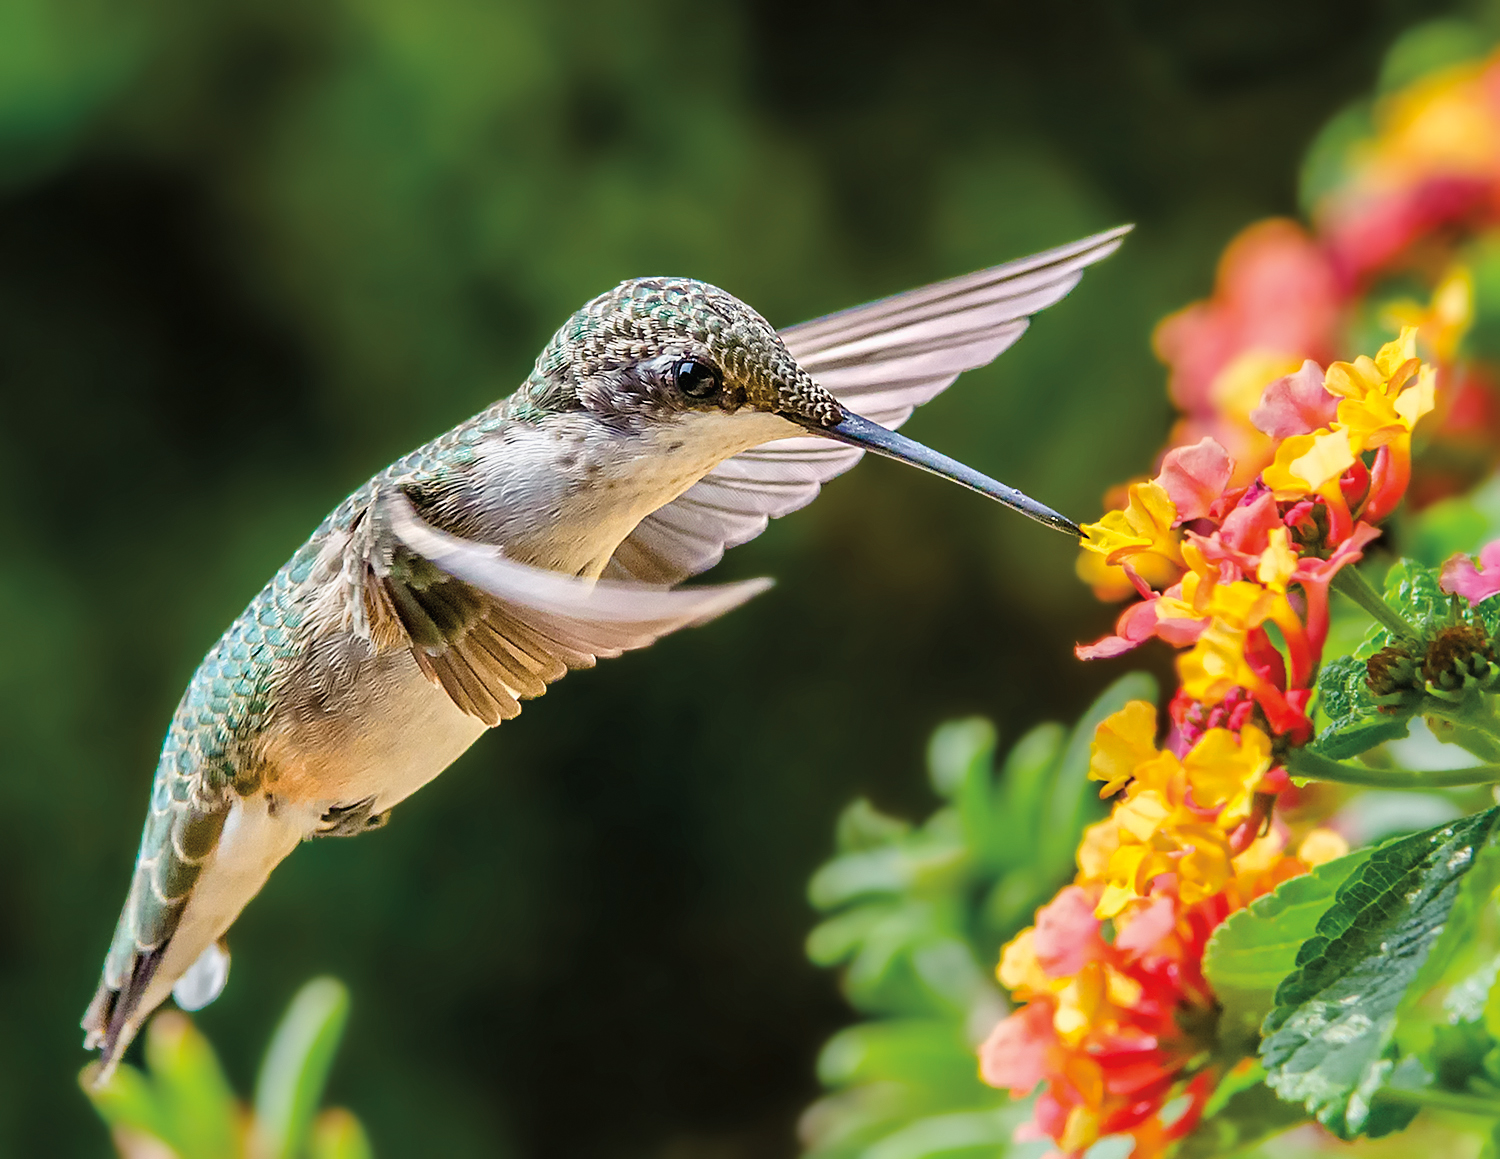 Like her male counterpart, the female ruby-throated hummingbird has glints of blue and green on her back and sides, but her throat is white.